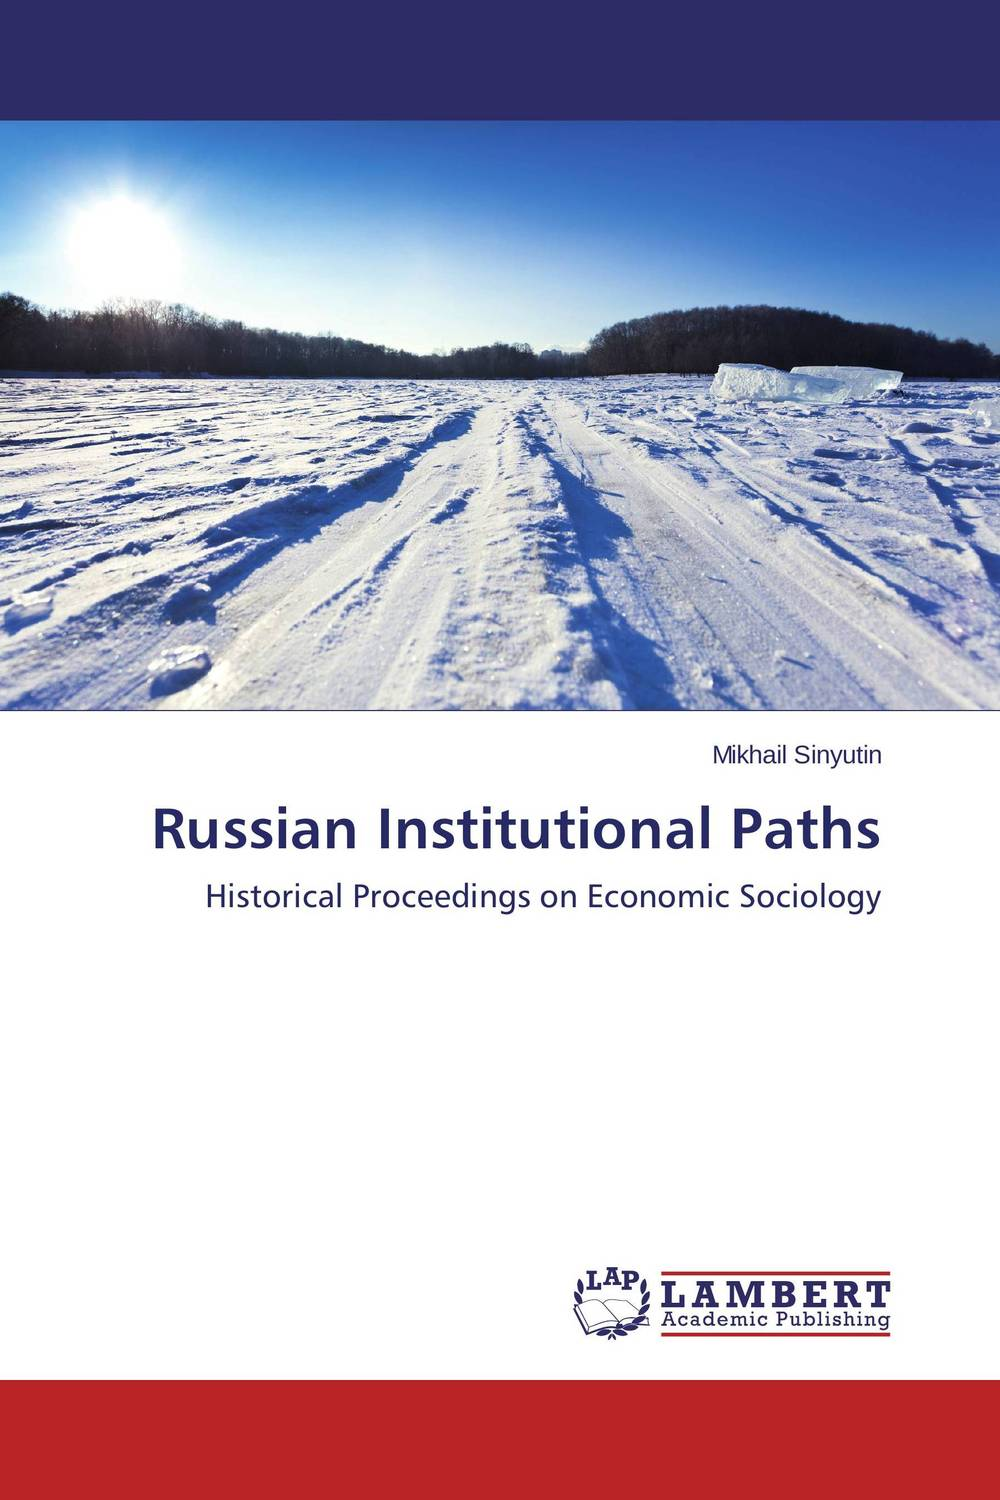 Russian Institutional Paths global historical sociology